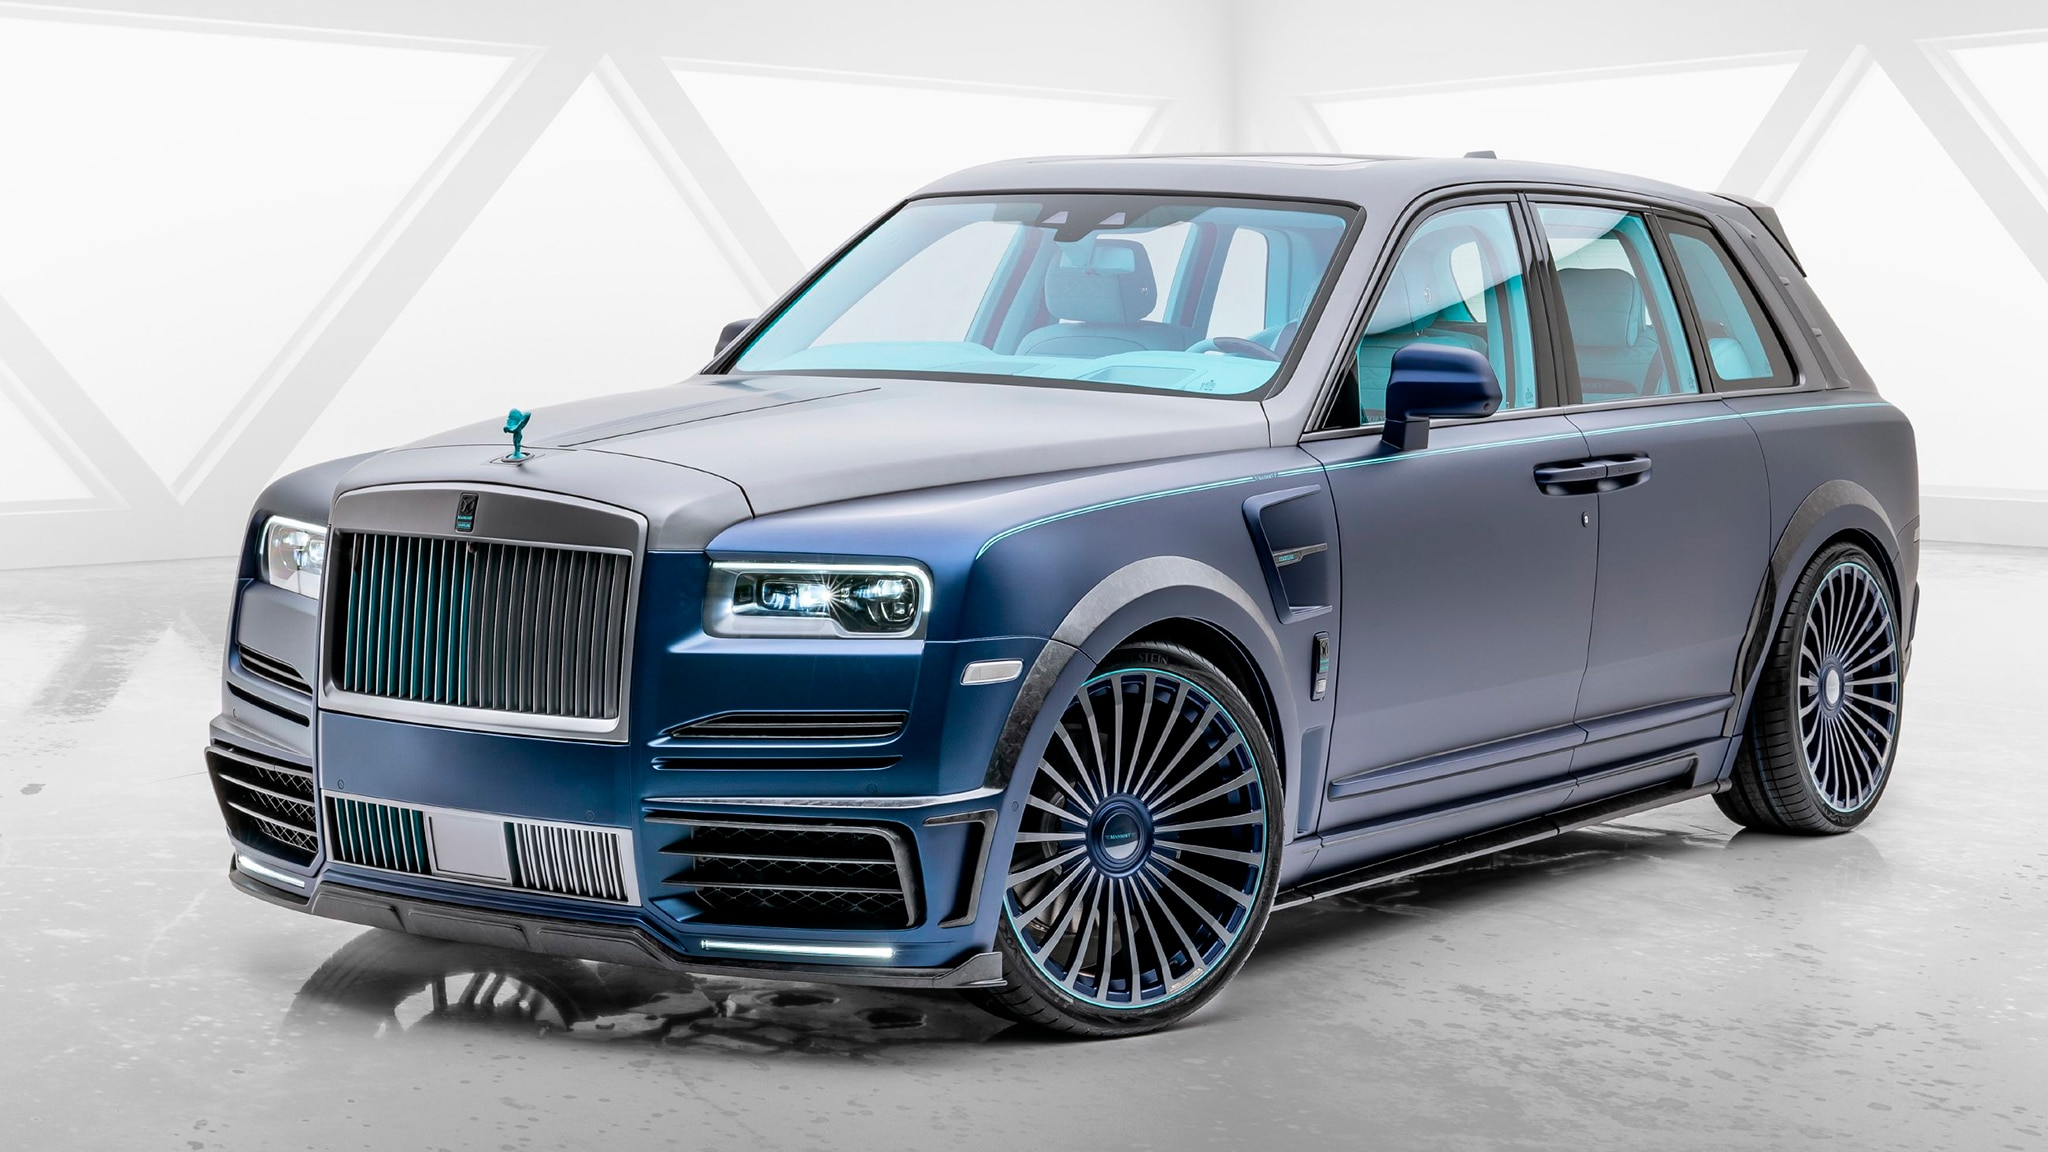 Not Even Coronavirus Can Stop Mansory From Ruining Luxury Cars